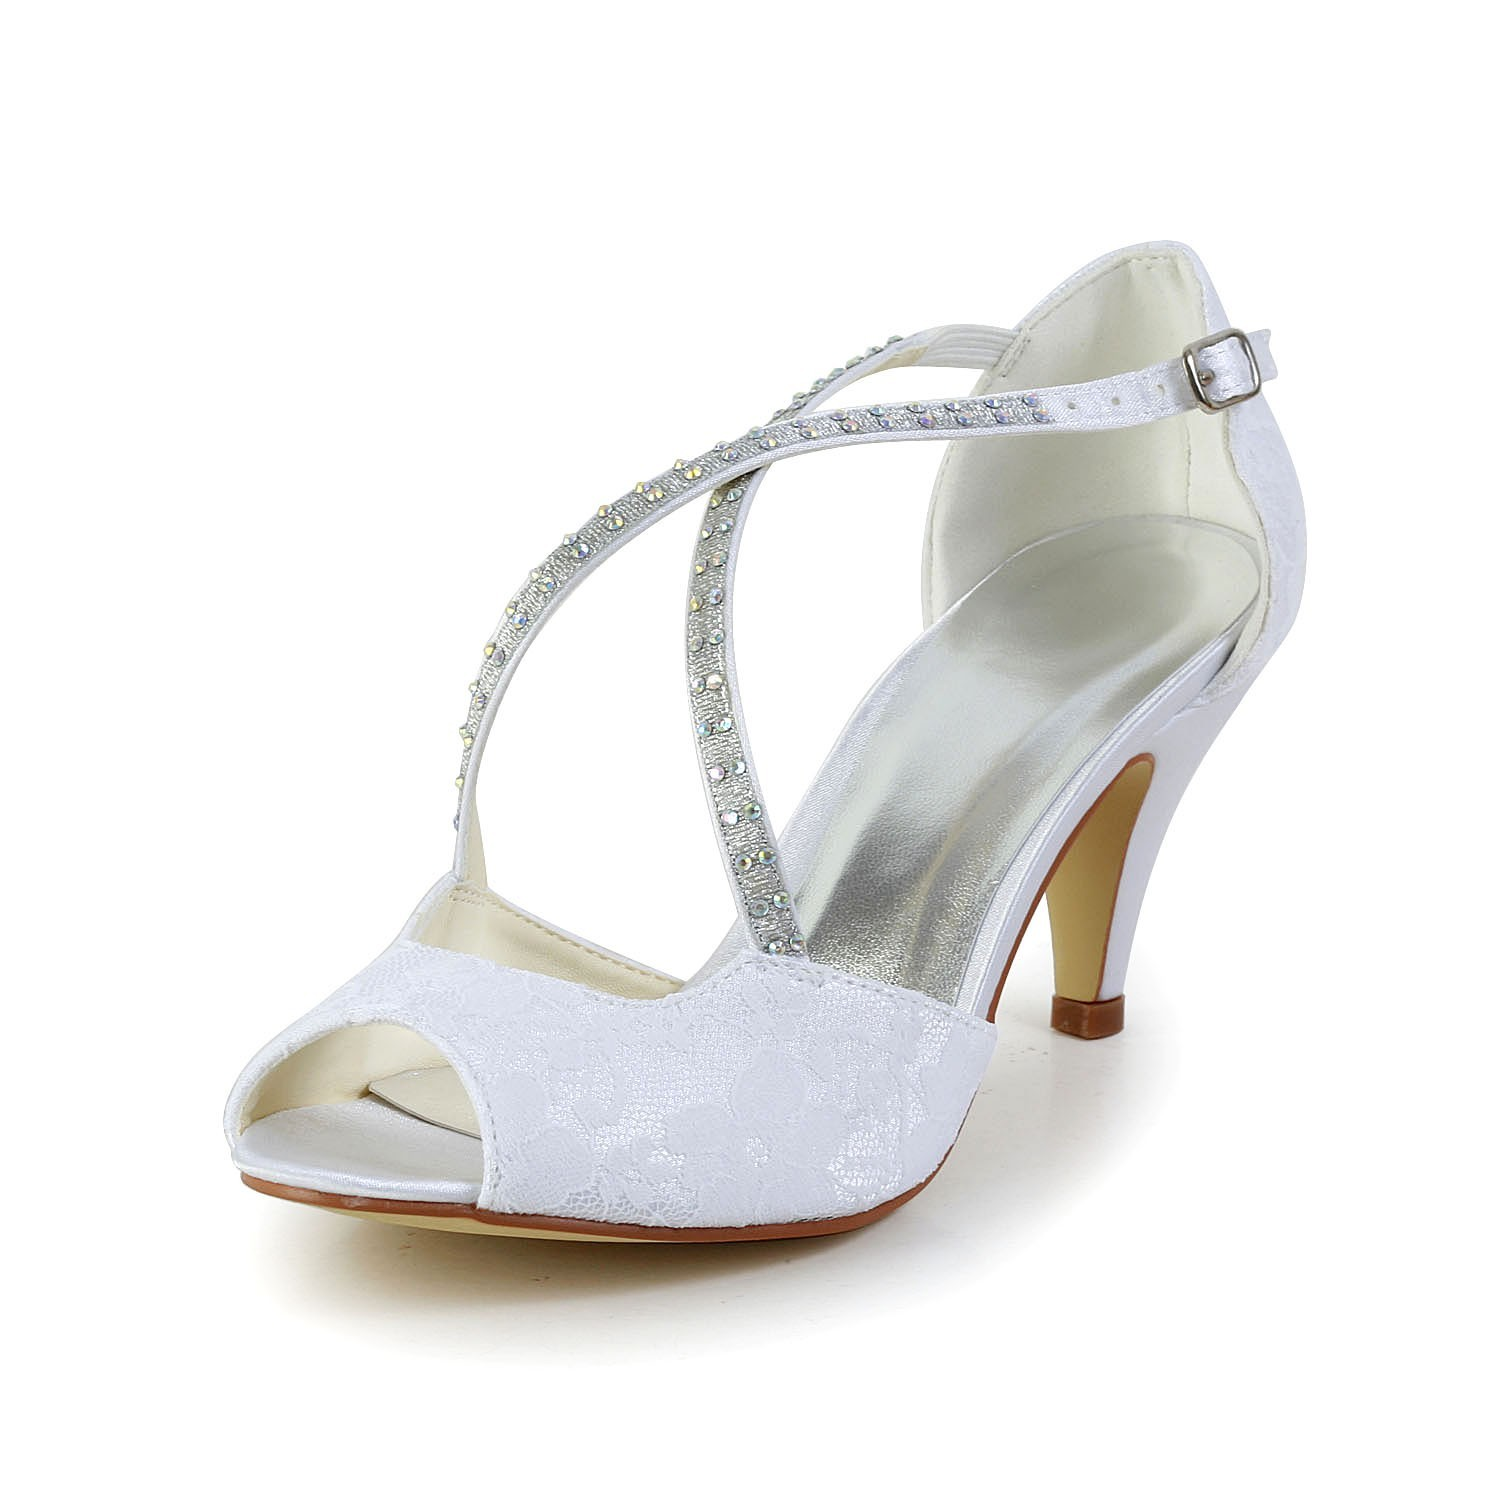 a1567299d3 Latest Women's Satin Cone Heel Peep Toe Sandals White Wedding Shoes With  Rhinestone Buckle